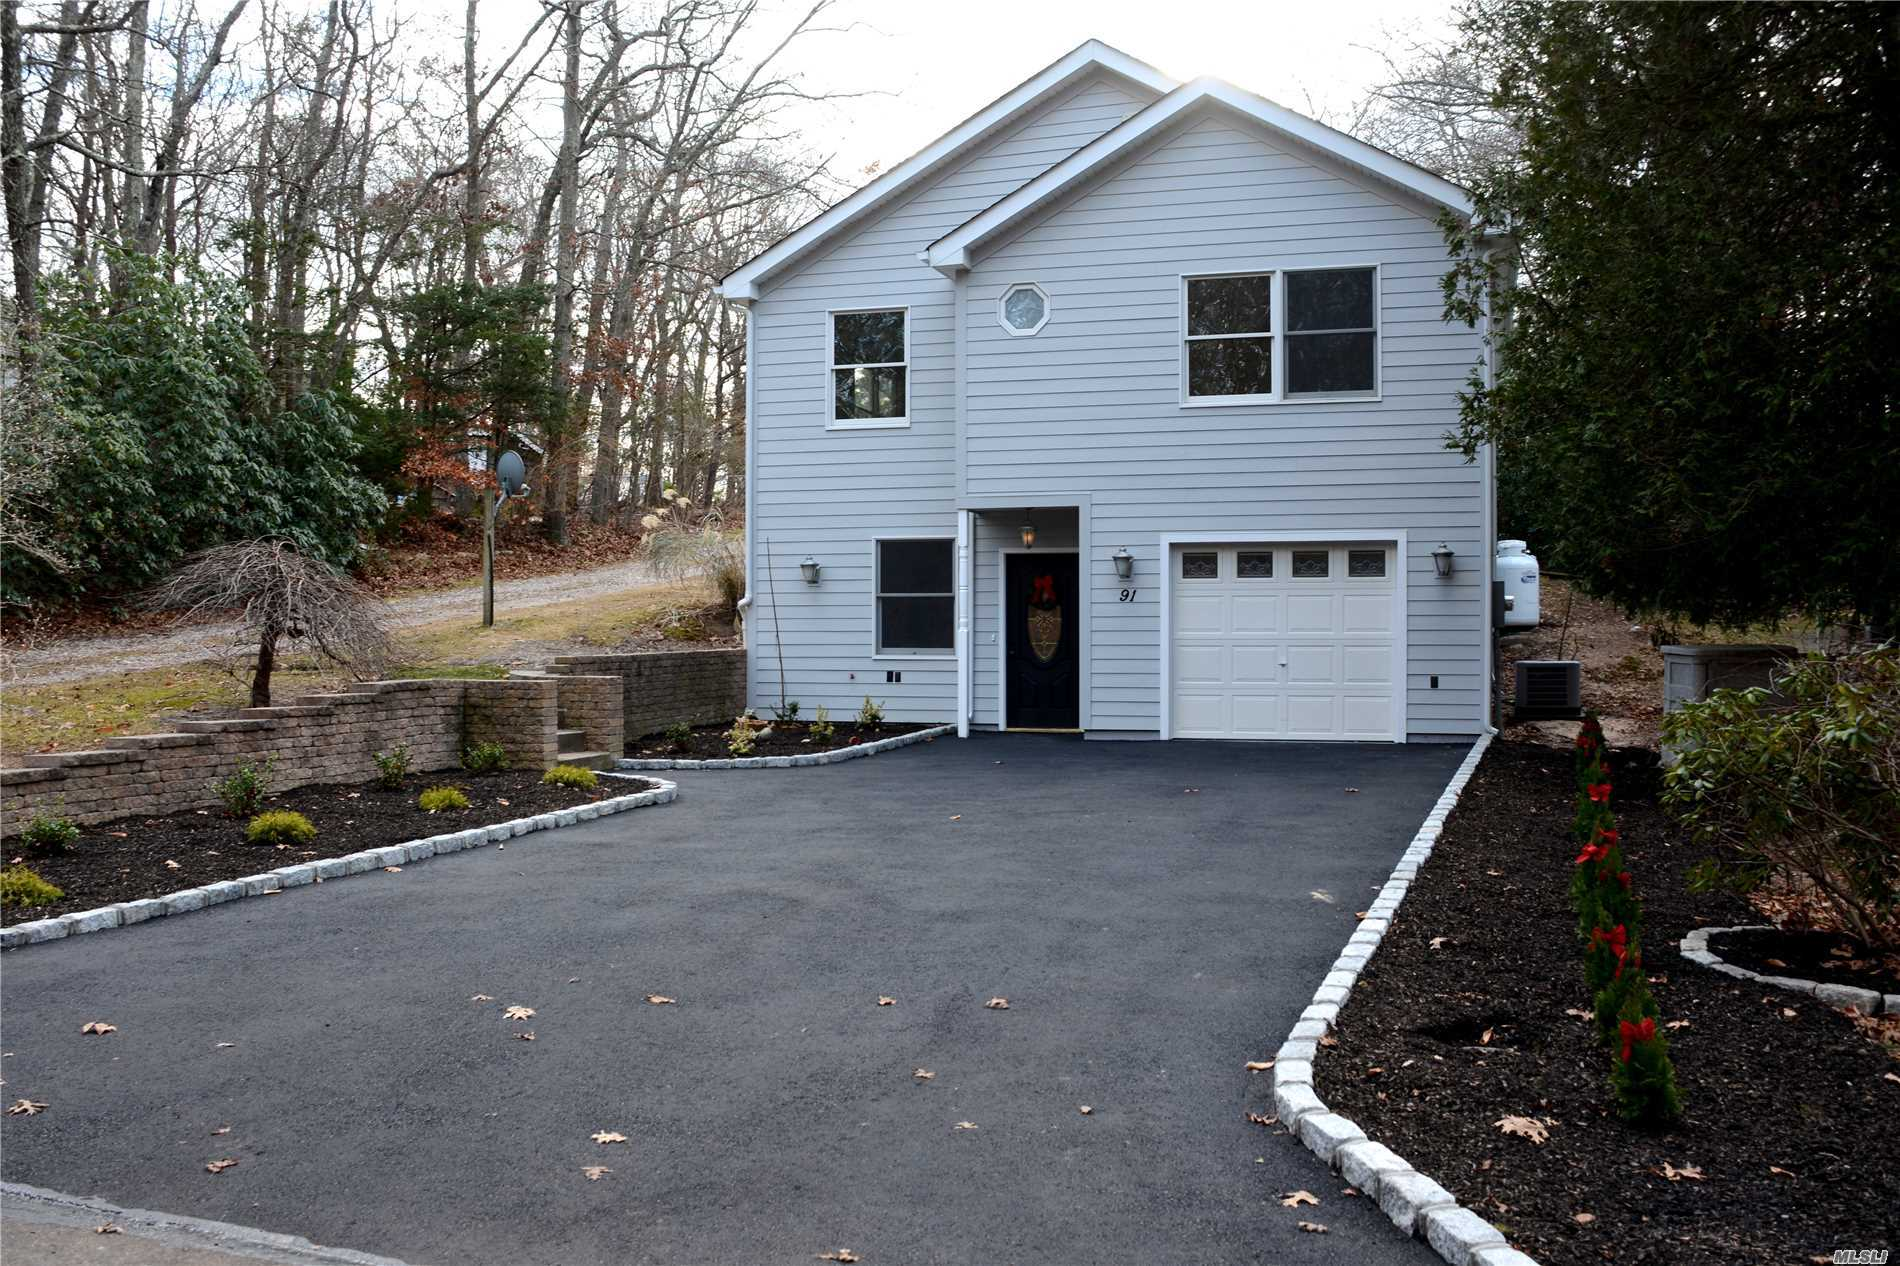 Move Right Into This Beautiful New Construction Three Bedroom, Two Full Bath, Wood And Tile Floors, 1 Car Garage Located In A Quiet Spot Adjacent To Wildwood State Park. Surrounded By Golf Courses, Vineyards And Minutes Away From The Beach. Peconic Tax Applies.Had An Offer, Deal Fell Through.